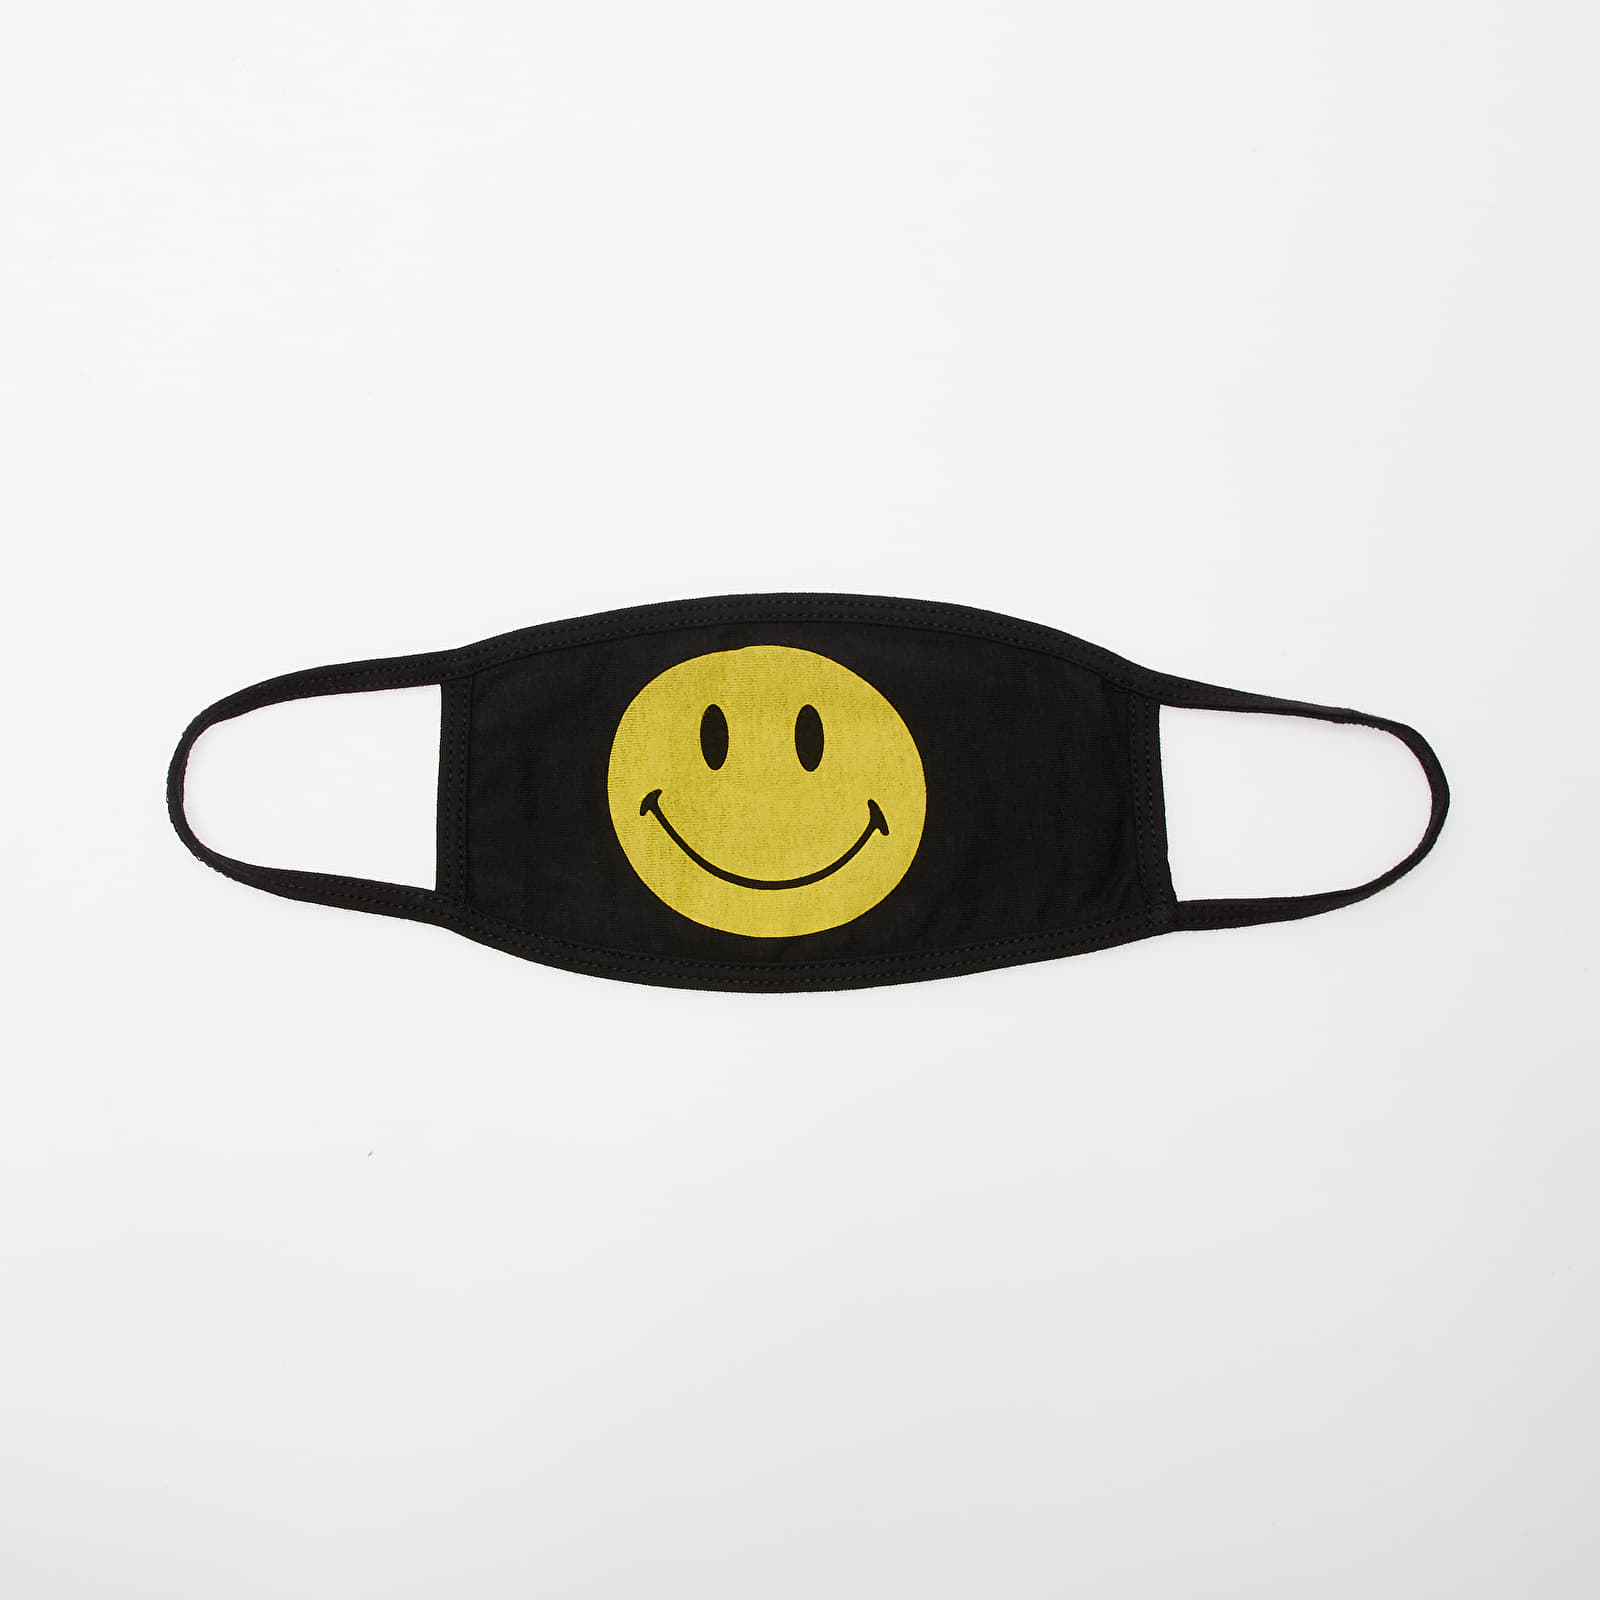 Accessoires Chinatown Market Smiley Logo Face Mask Black